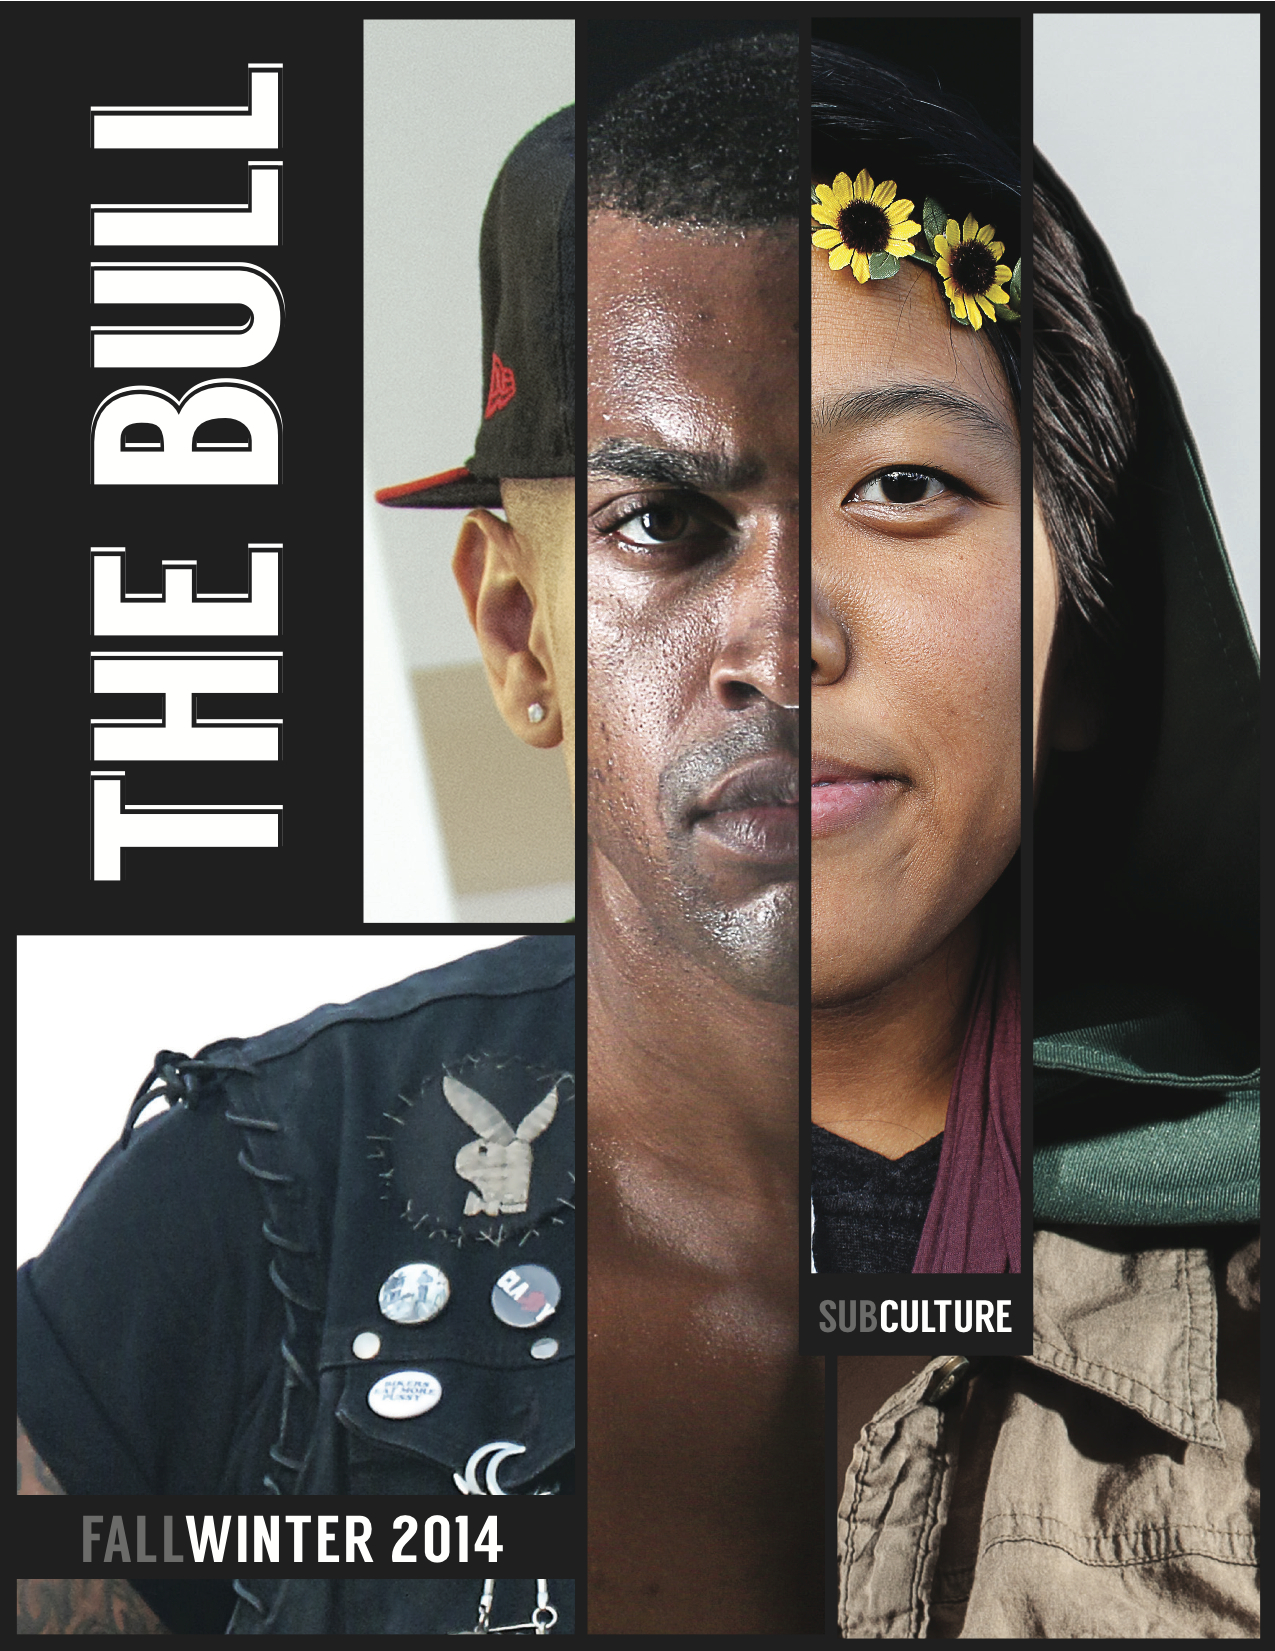 The Bull: Subculture (Fall 2014)